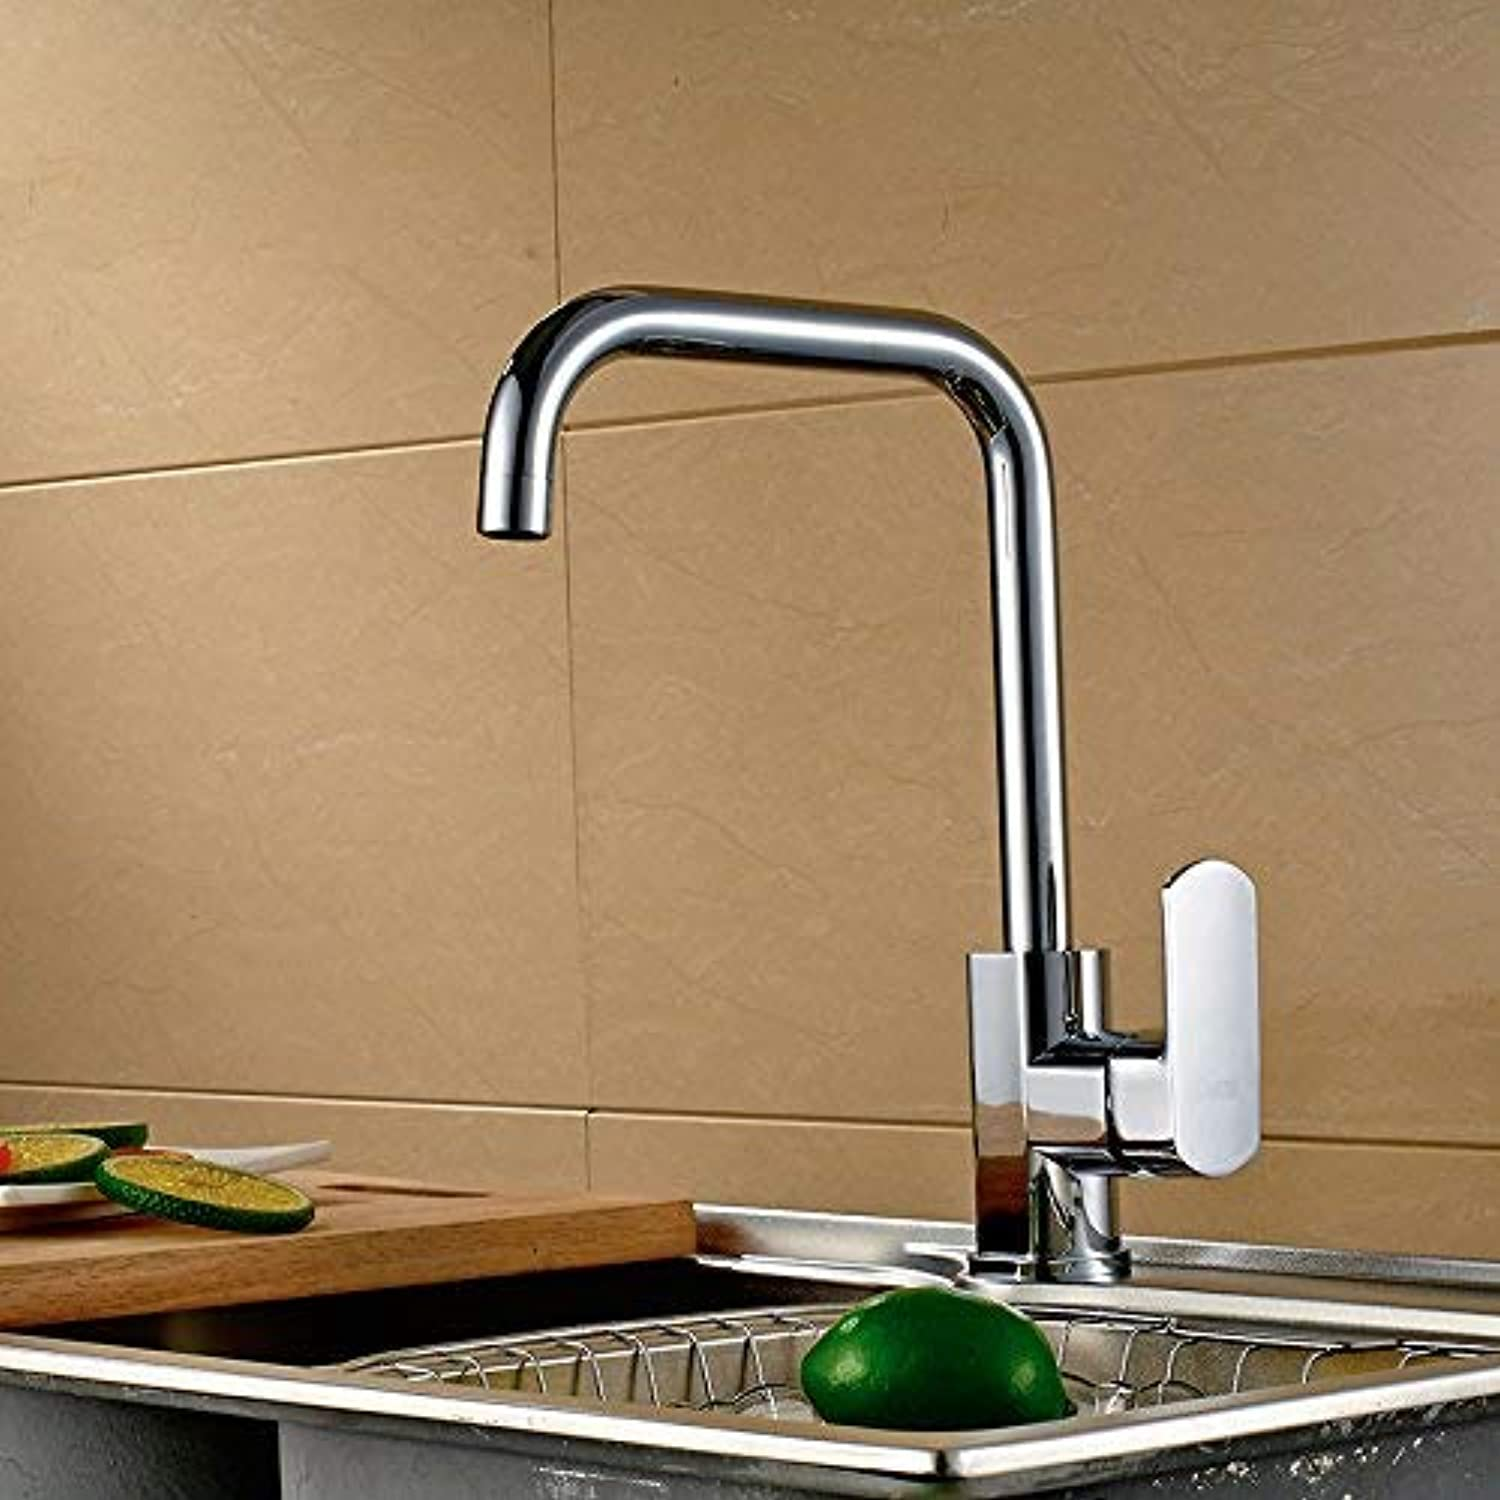 Oudan Modern Kitchen Sink Mixer Tap Easy to install rust-proof Kitchen Sink Basin Faucet Quality Warranty Provided,81